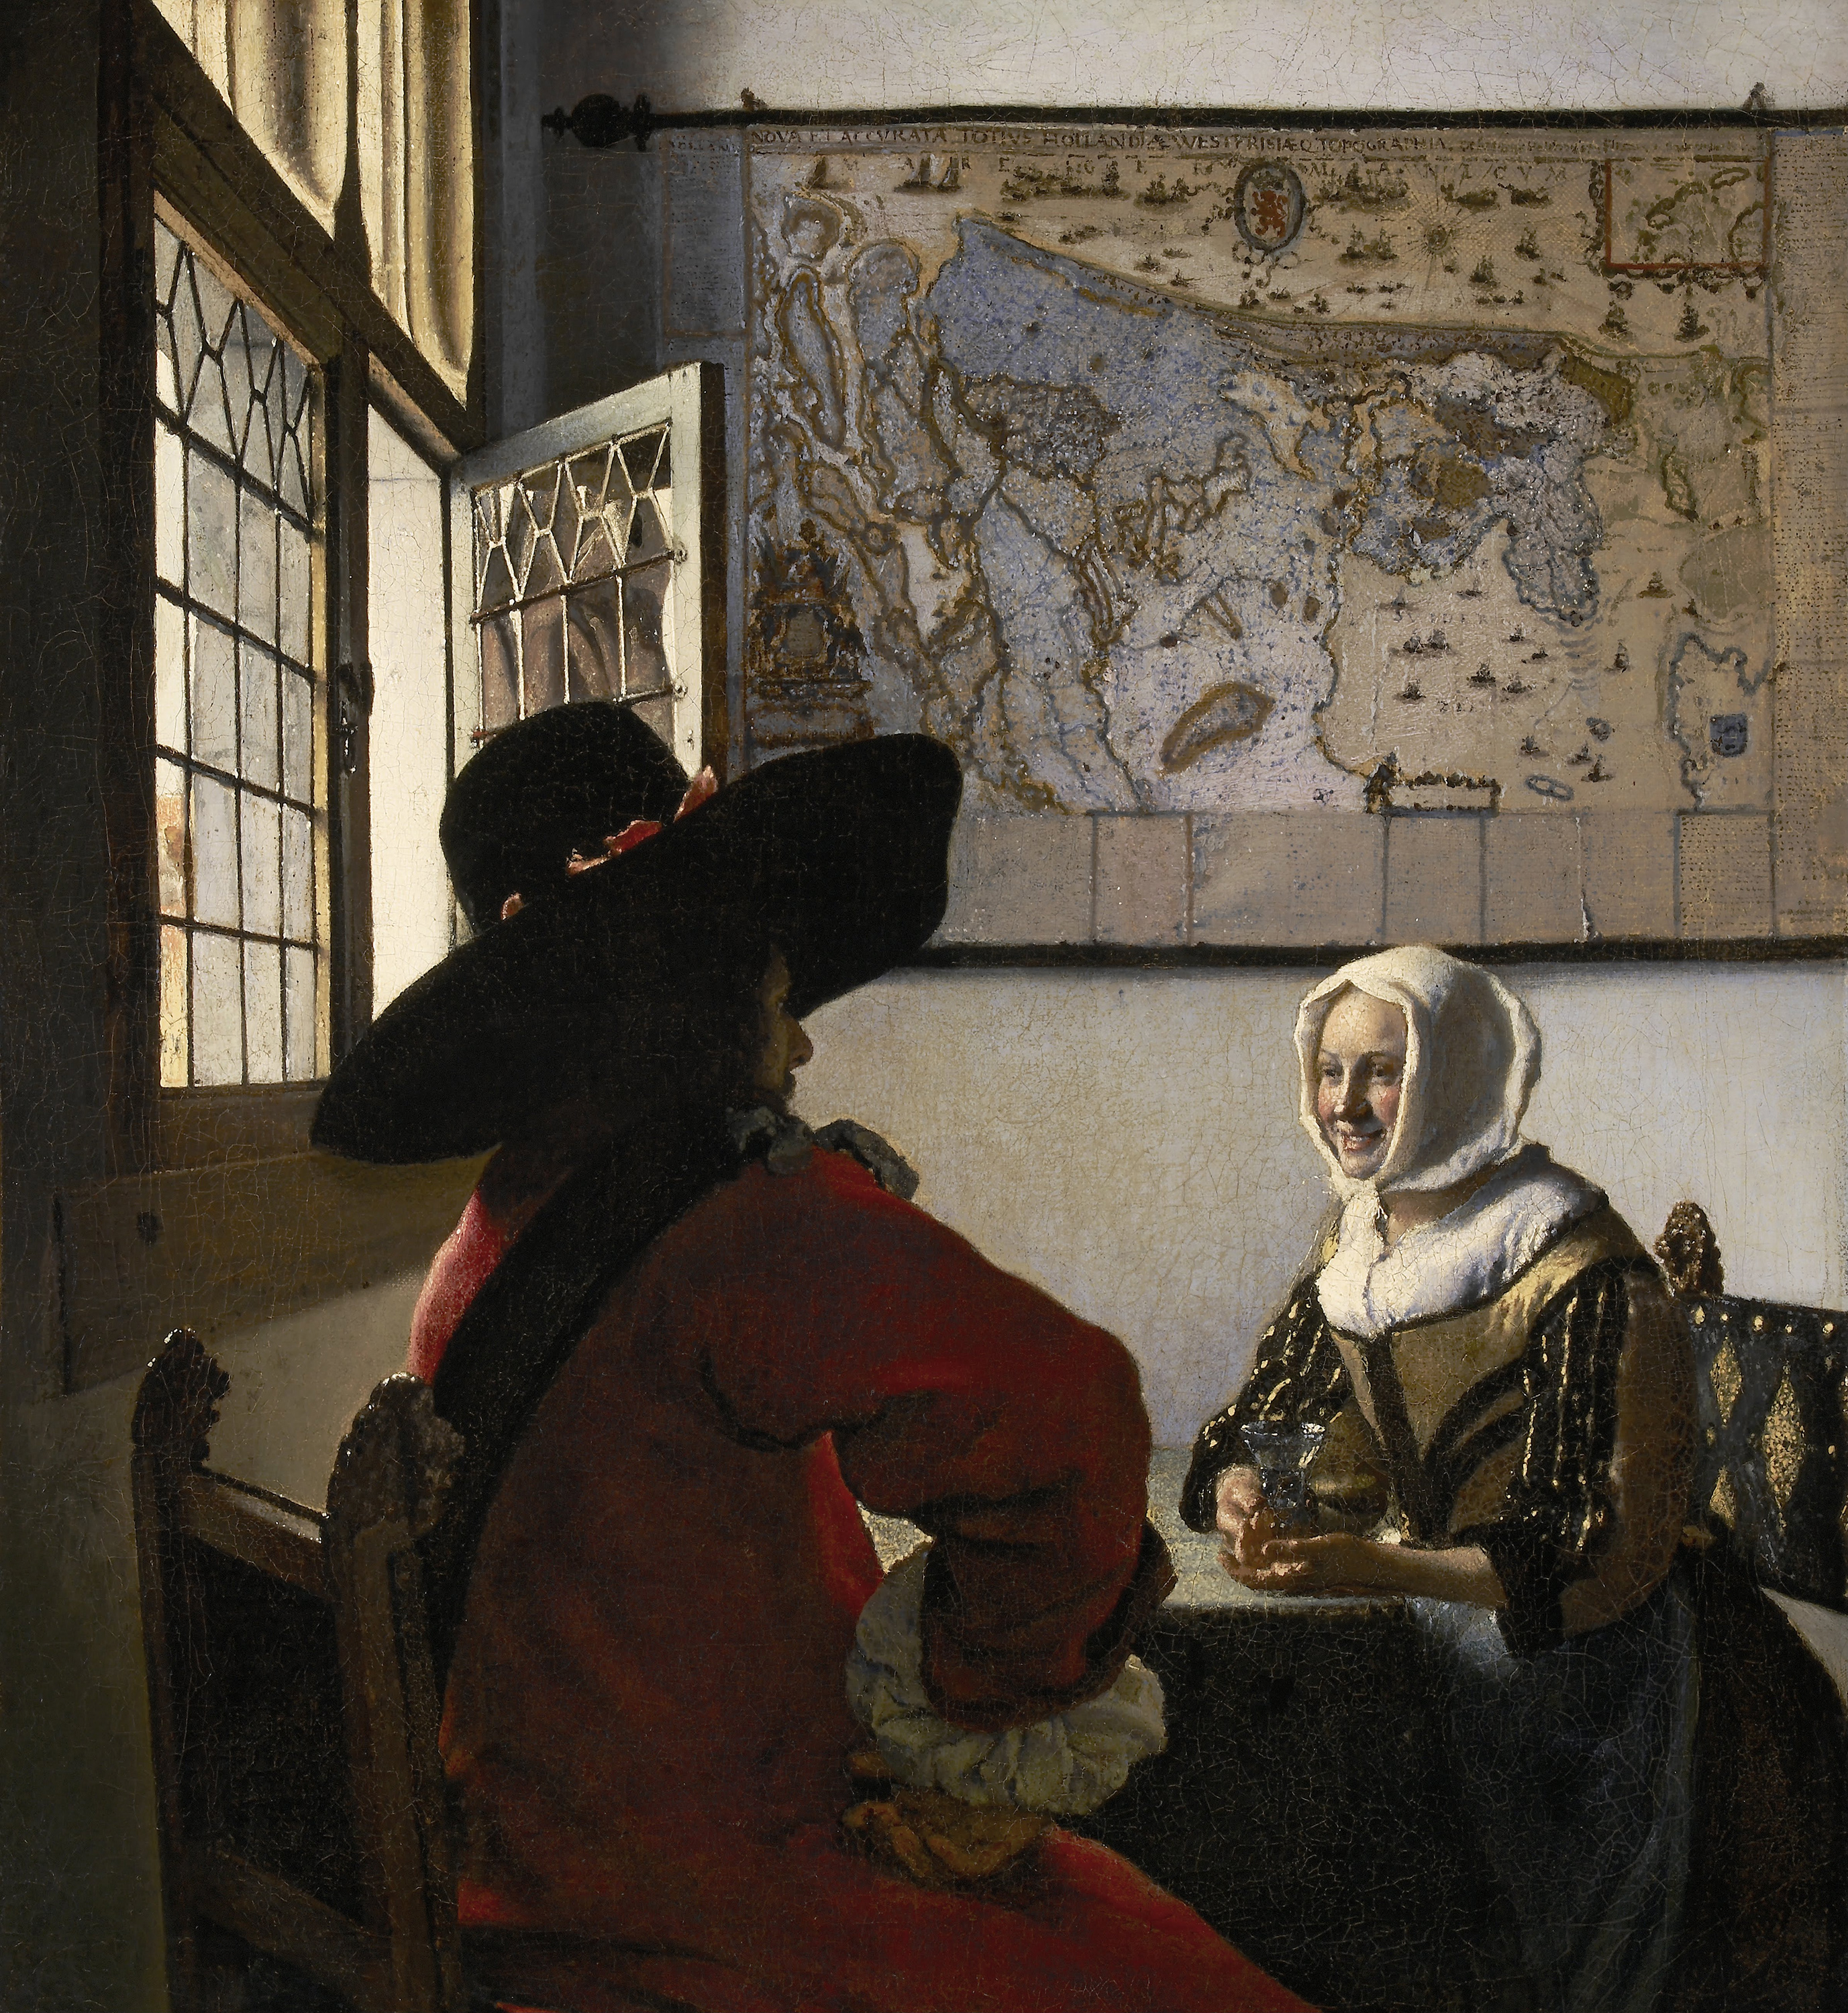 Officer and Laughing Girl, 1657 — Johannes Vermeer, The Frick Collection